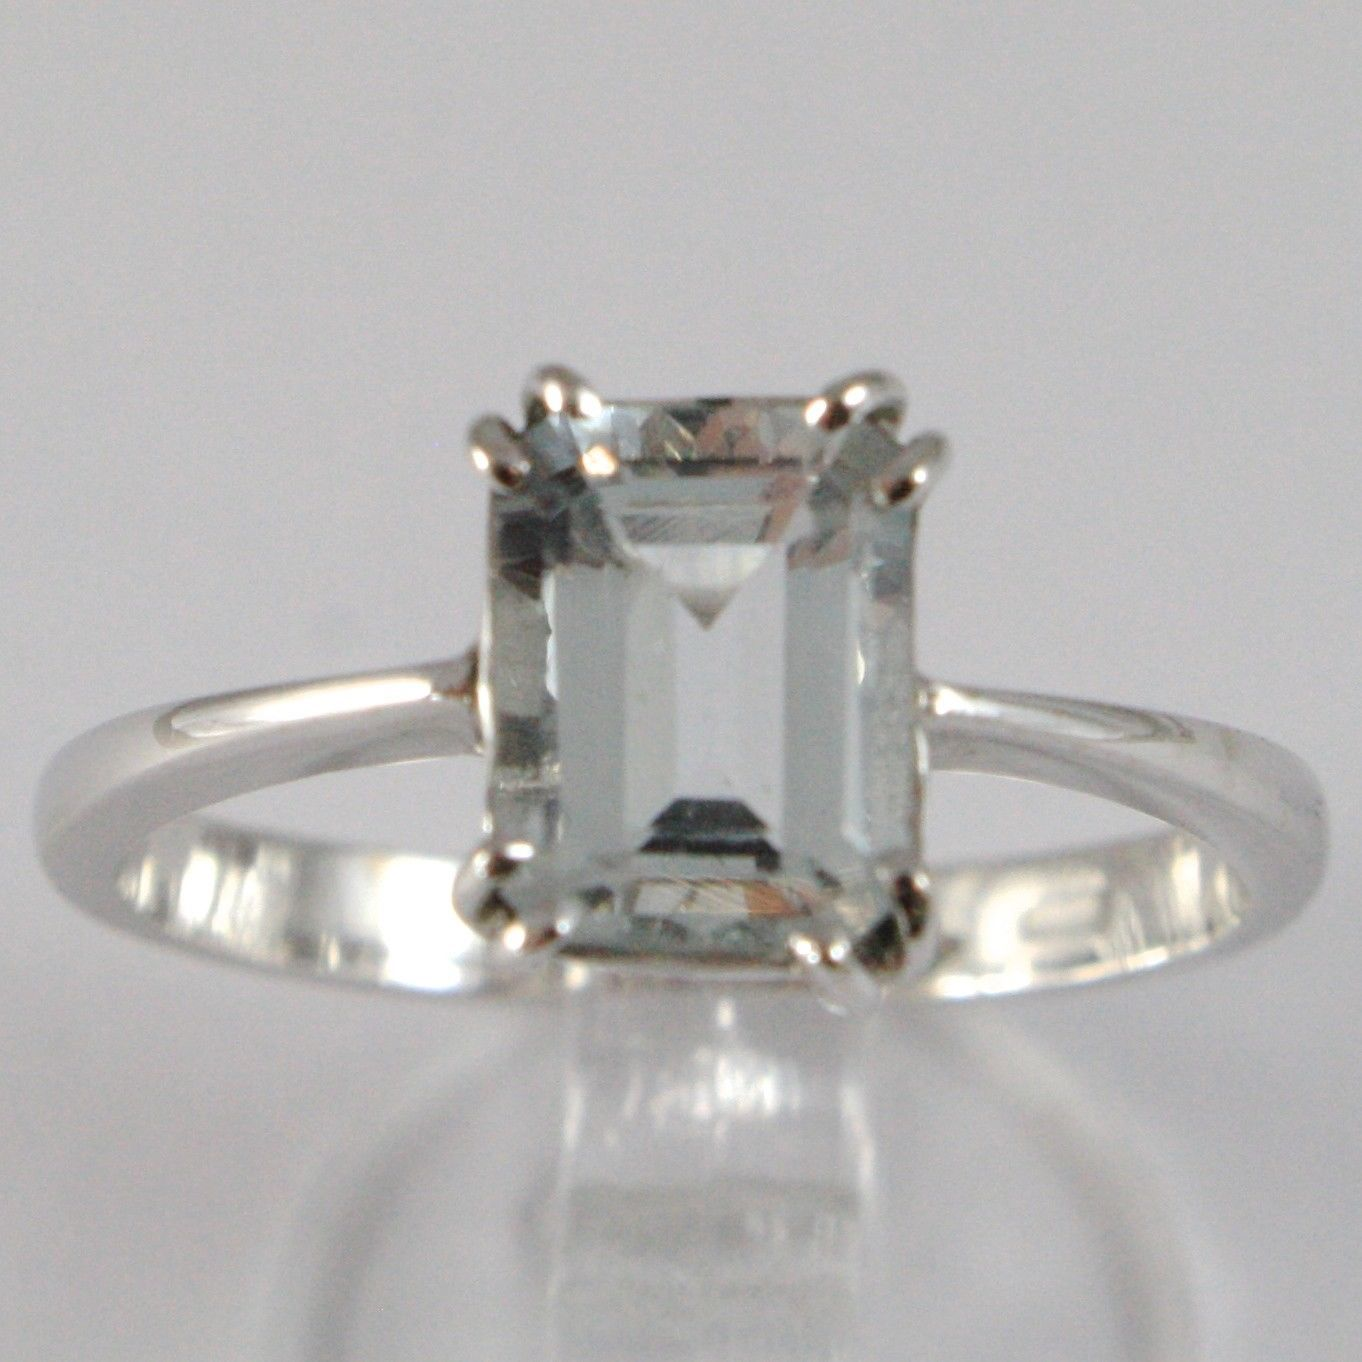 WHITE GOLD RING 750 18K, WITH AQUAMARINE CARAT 1.5, CUT EMERALD